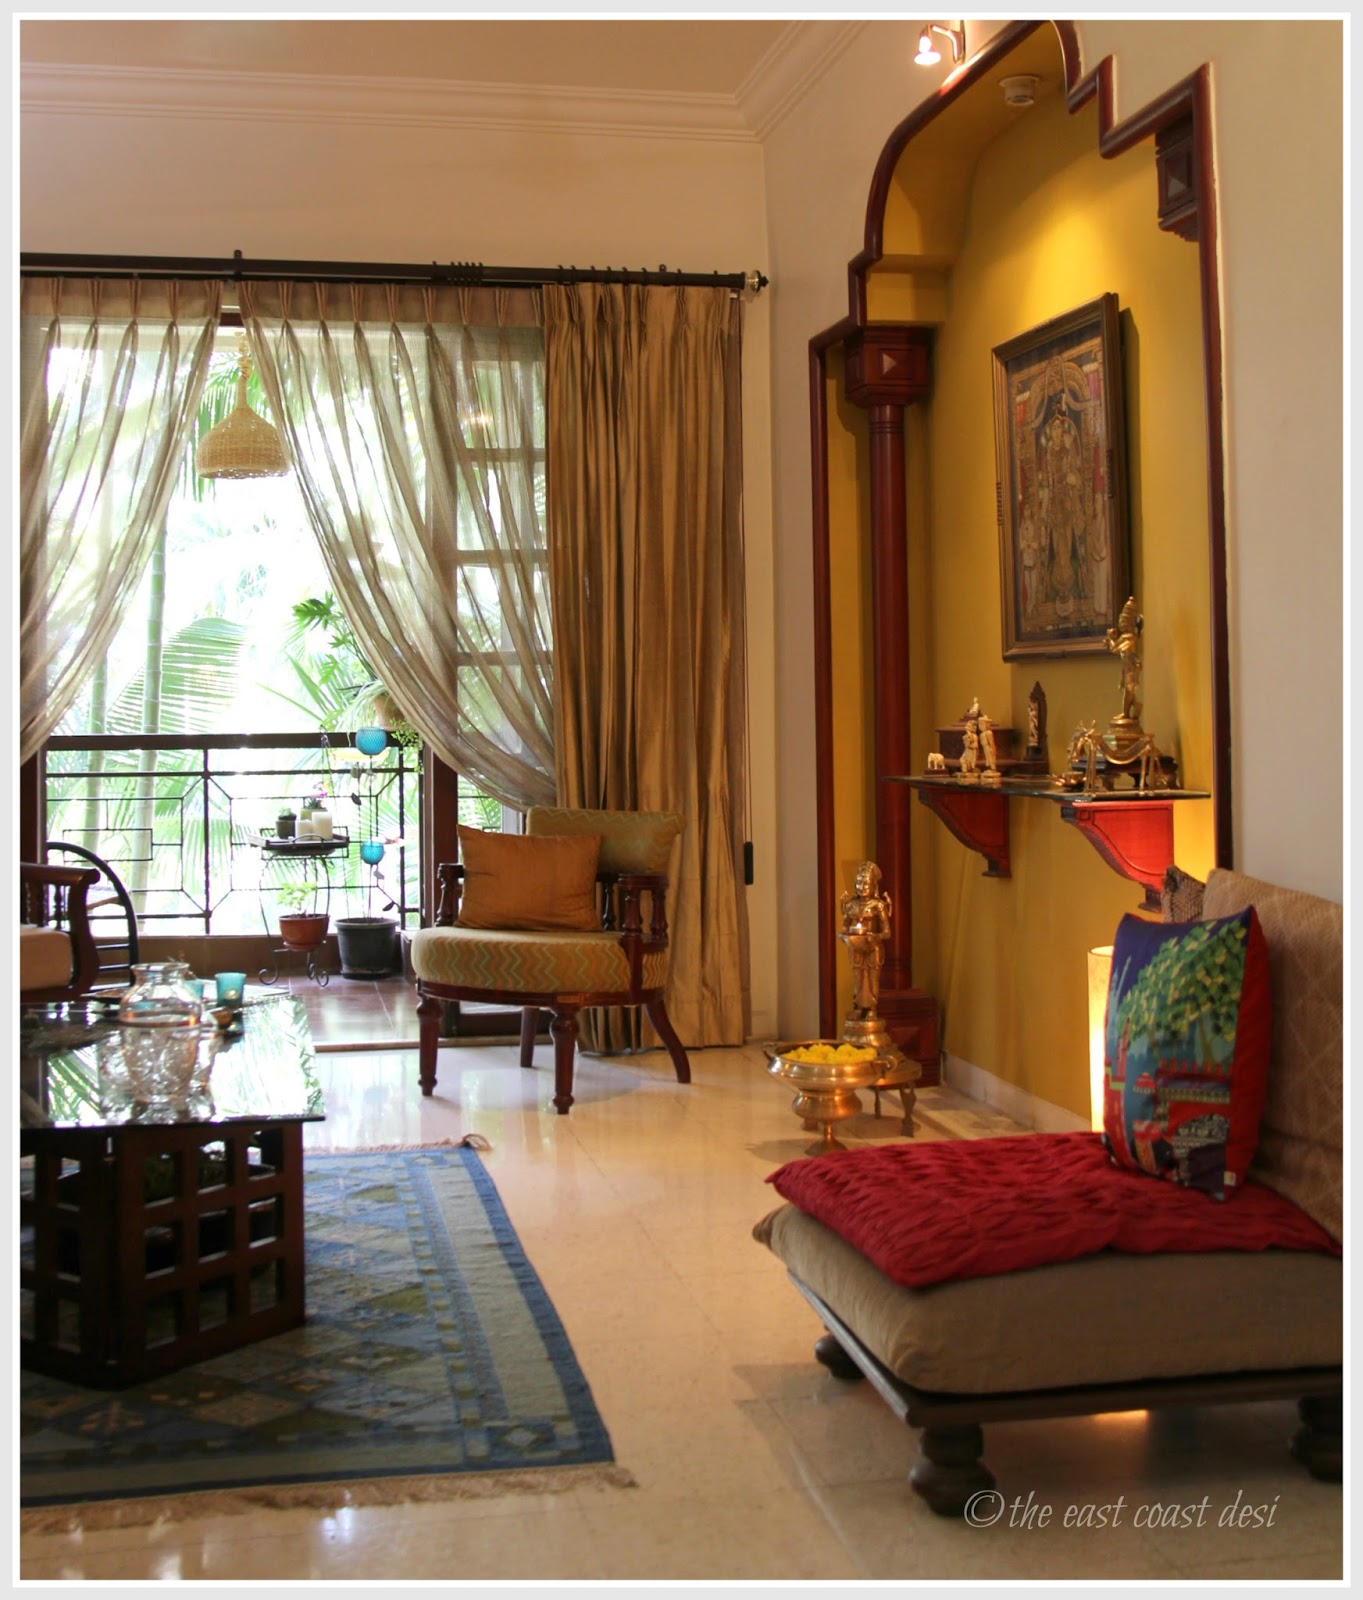 The east coast desi living with what you love home tour for Interior designs for bedrooms indian style